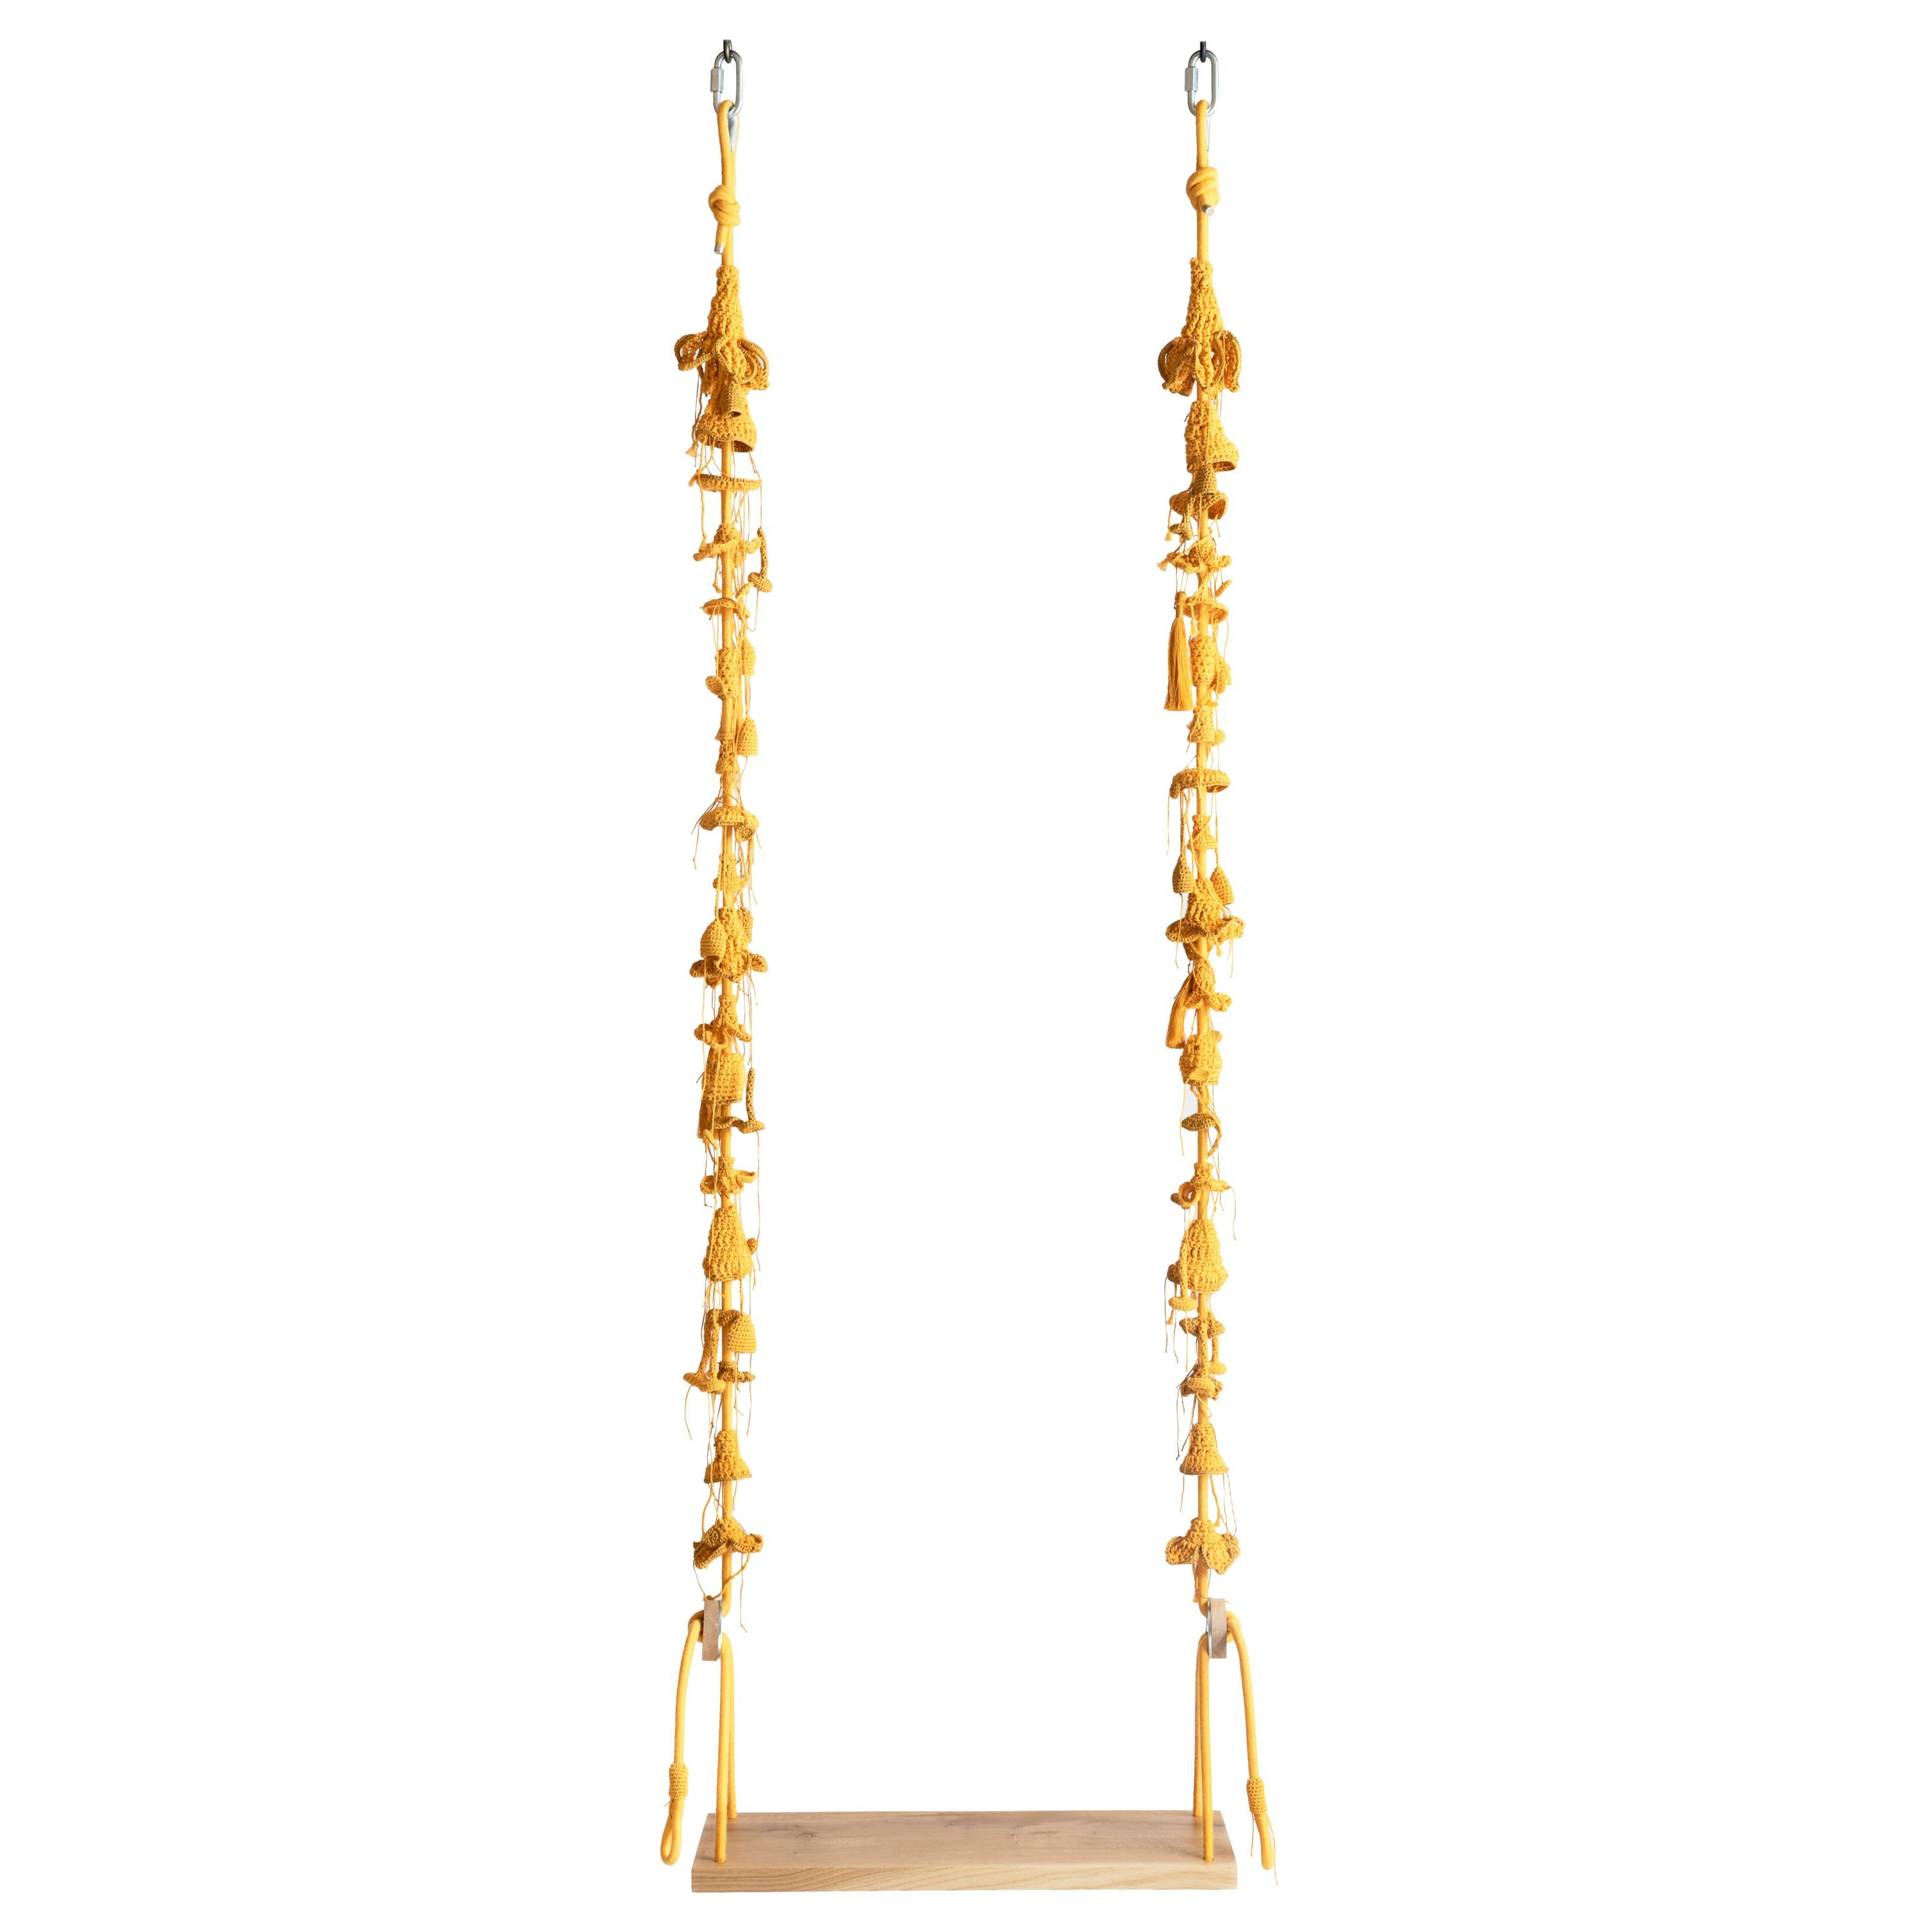 Gold Textile Swing Handmade Crochet in Cotton and Polyester with Oak Wood Seat